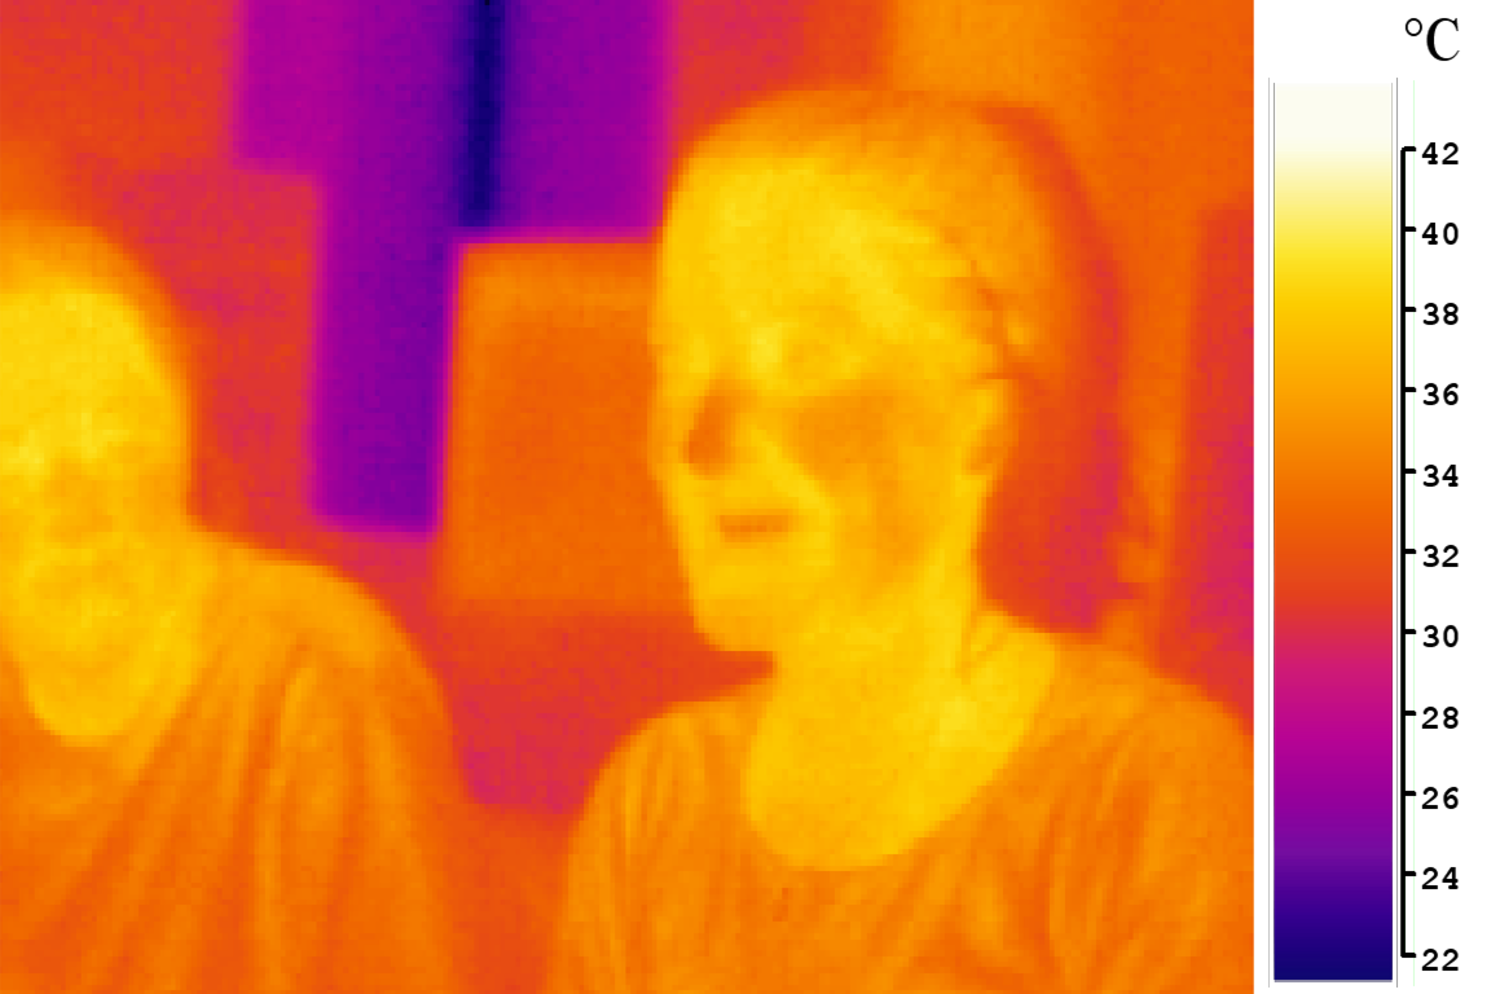 An image of two people in mid-infrared (